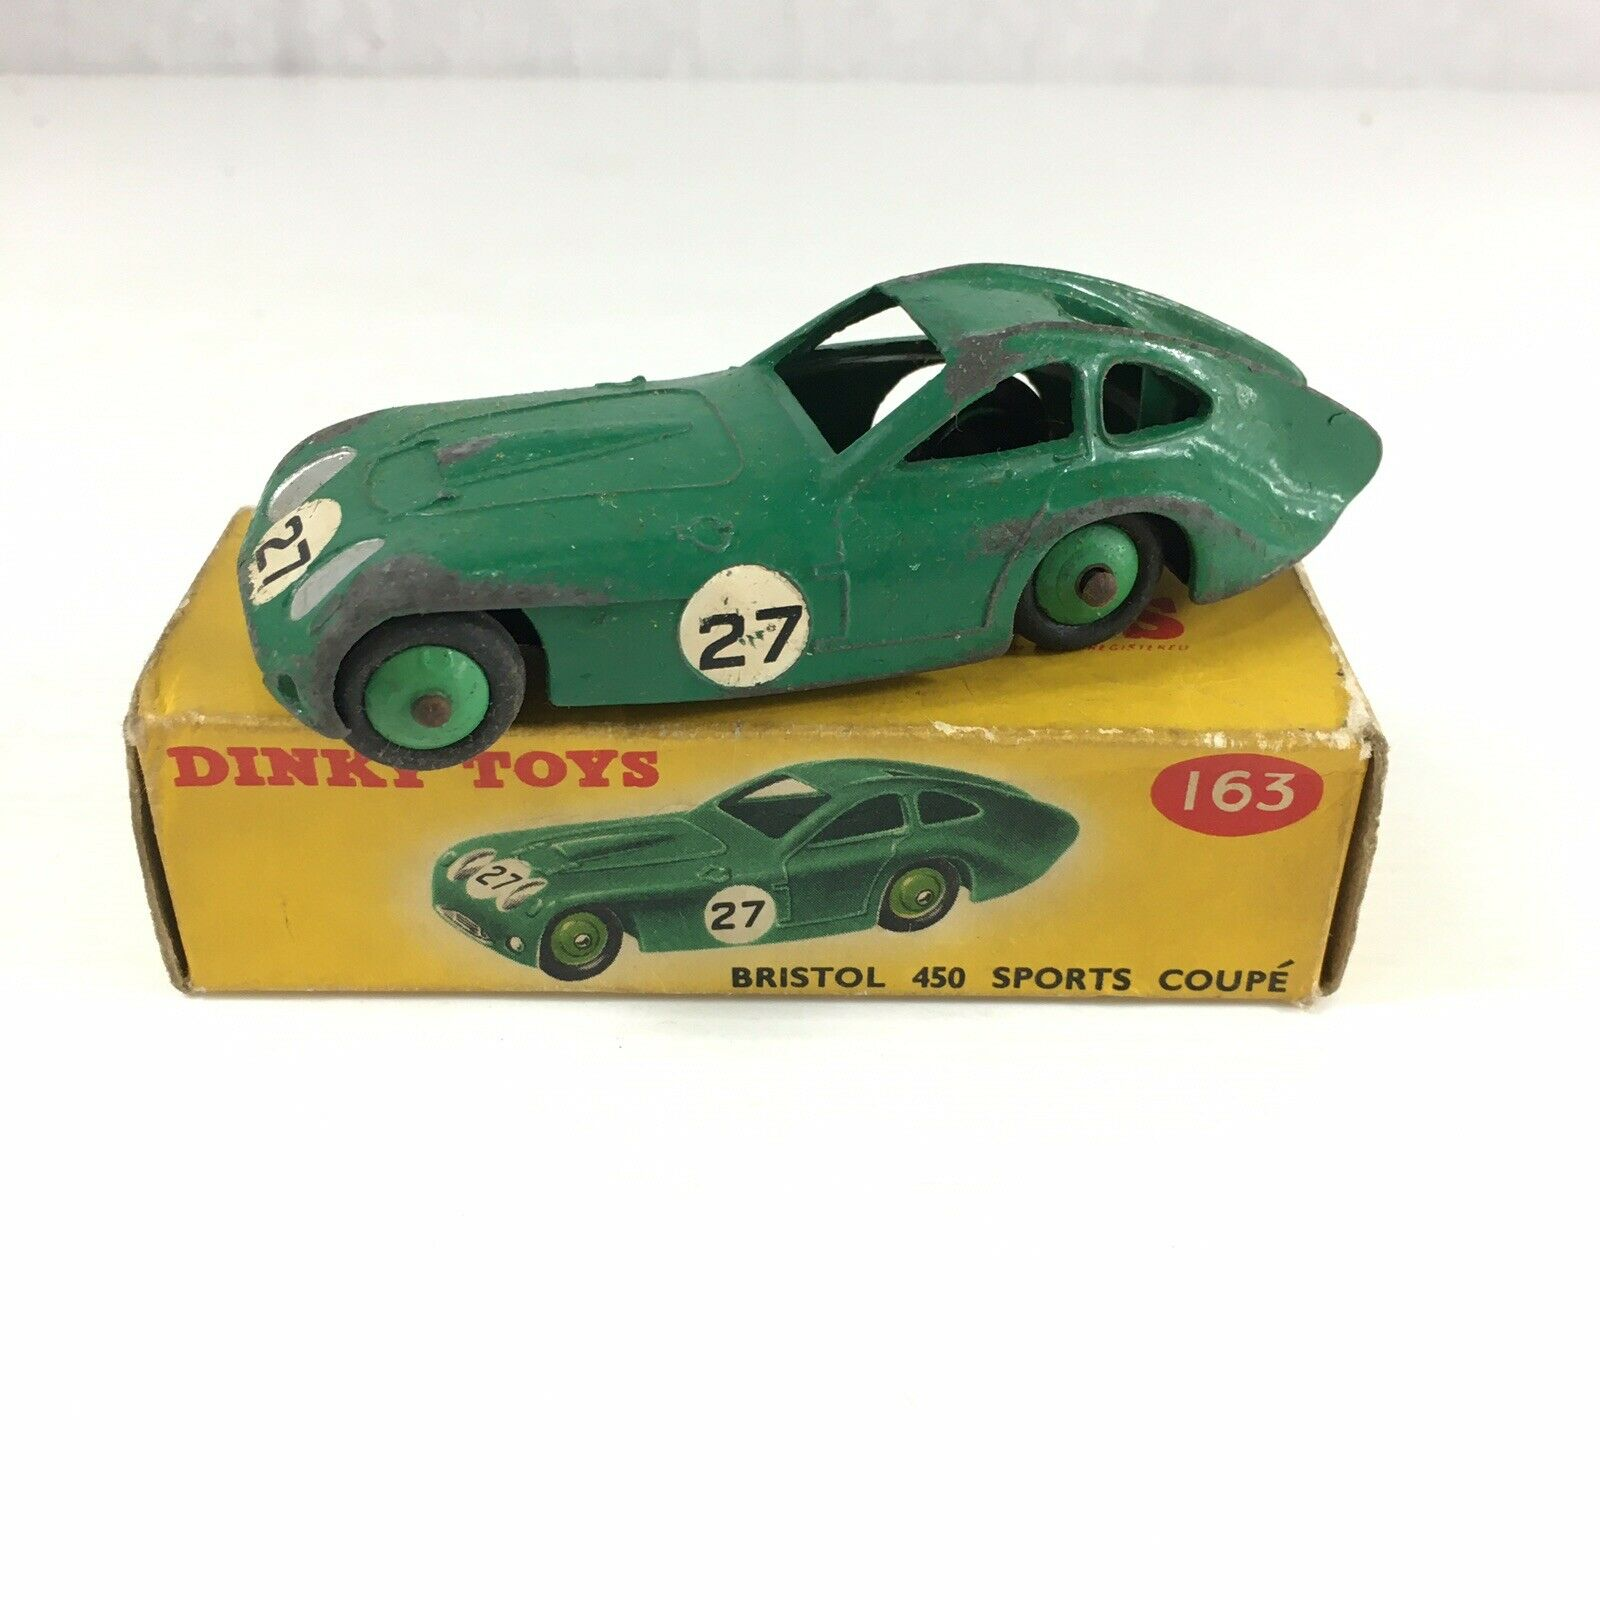 Vintage Boxed Dinky Toys 163 Bristol 450 Sports Coupe 9.5cm In Length